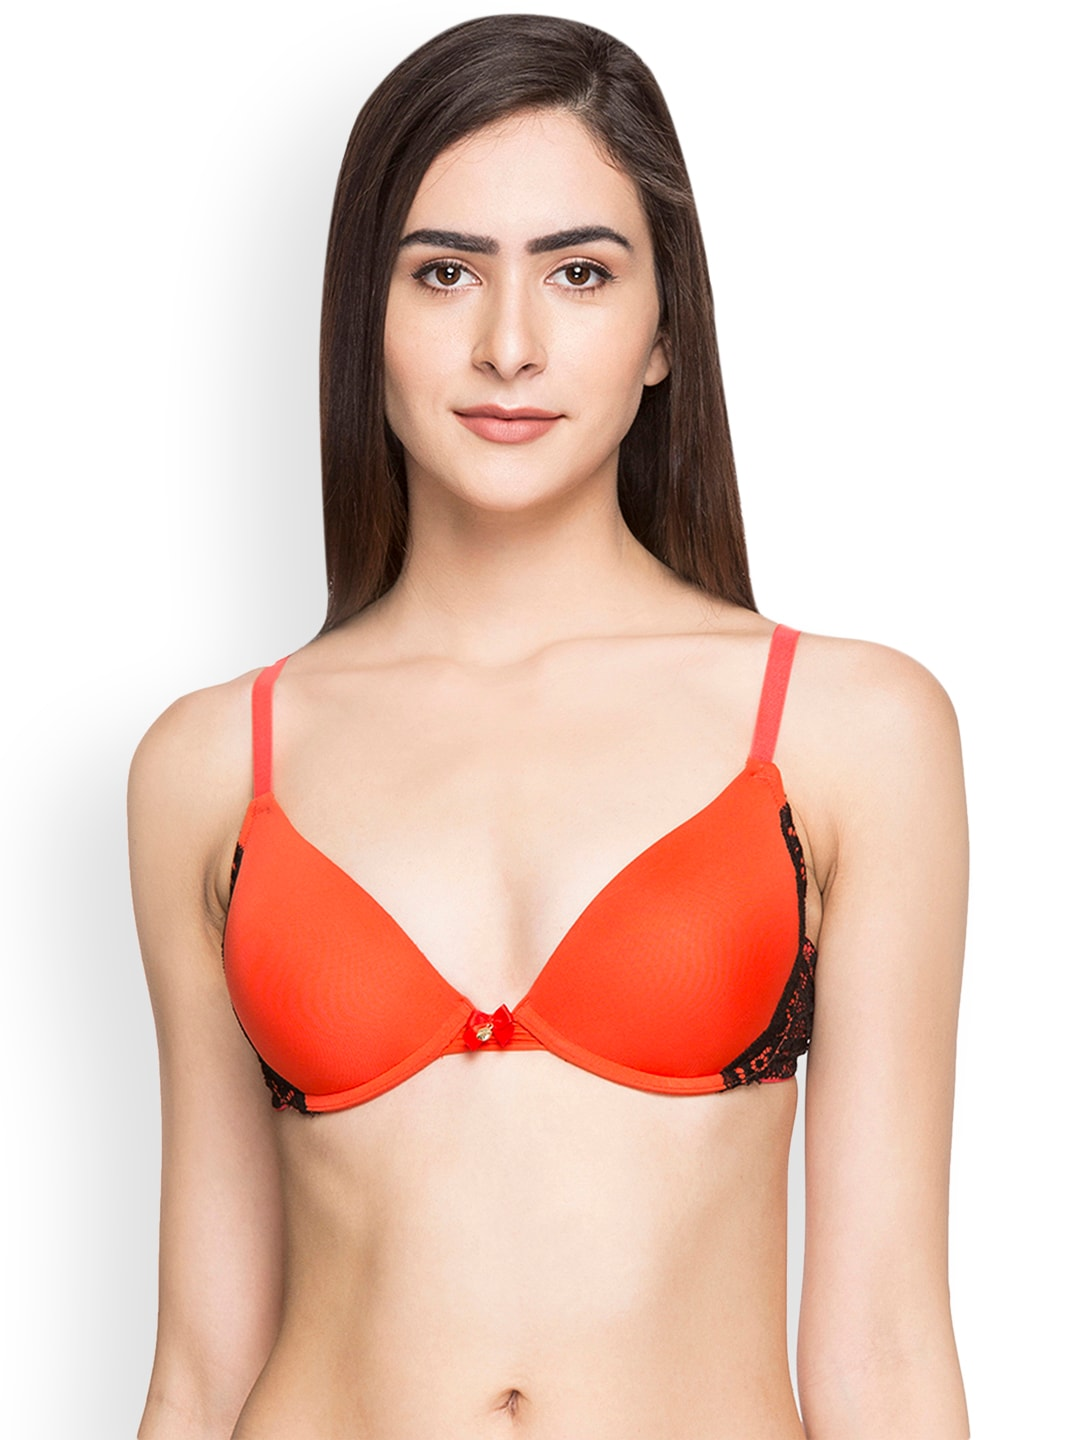 452a89a58f3d8 Bra and Sets for women - Myntra